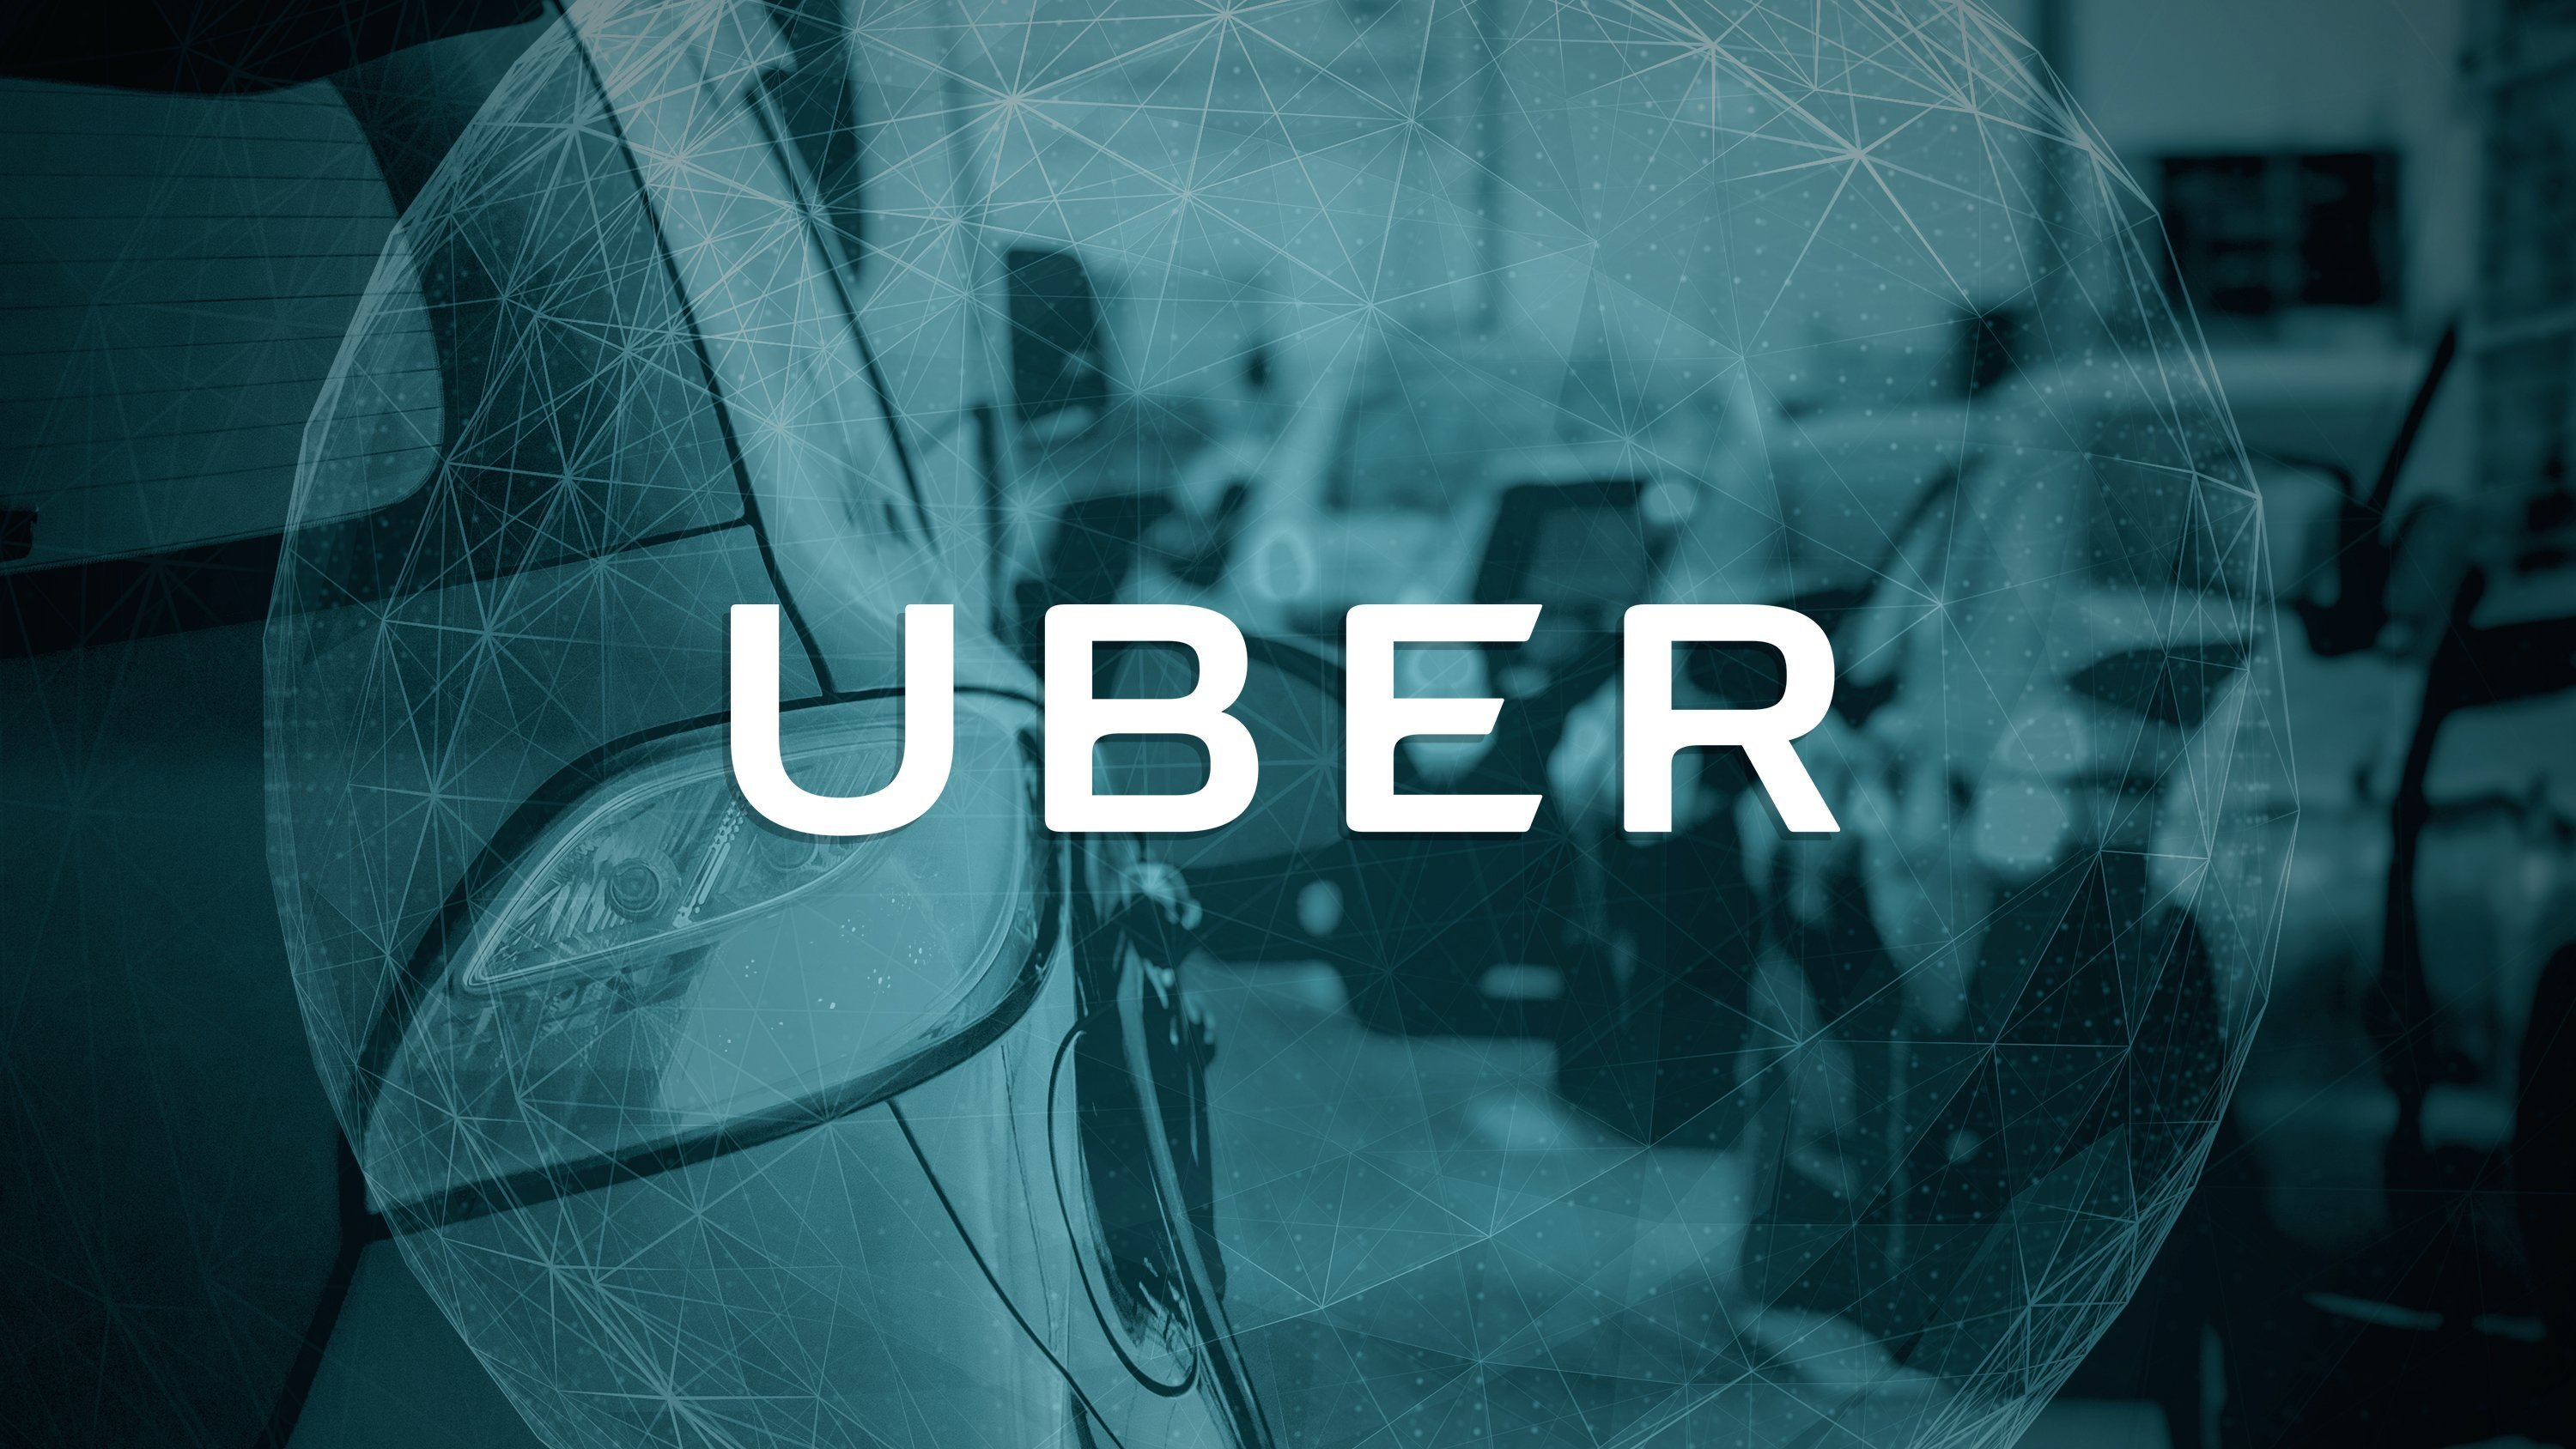 Uber 'failed consumers' and faces 20 years of privacy audits — FTC